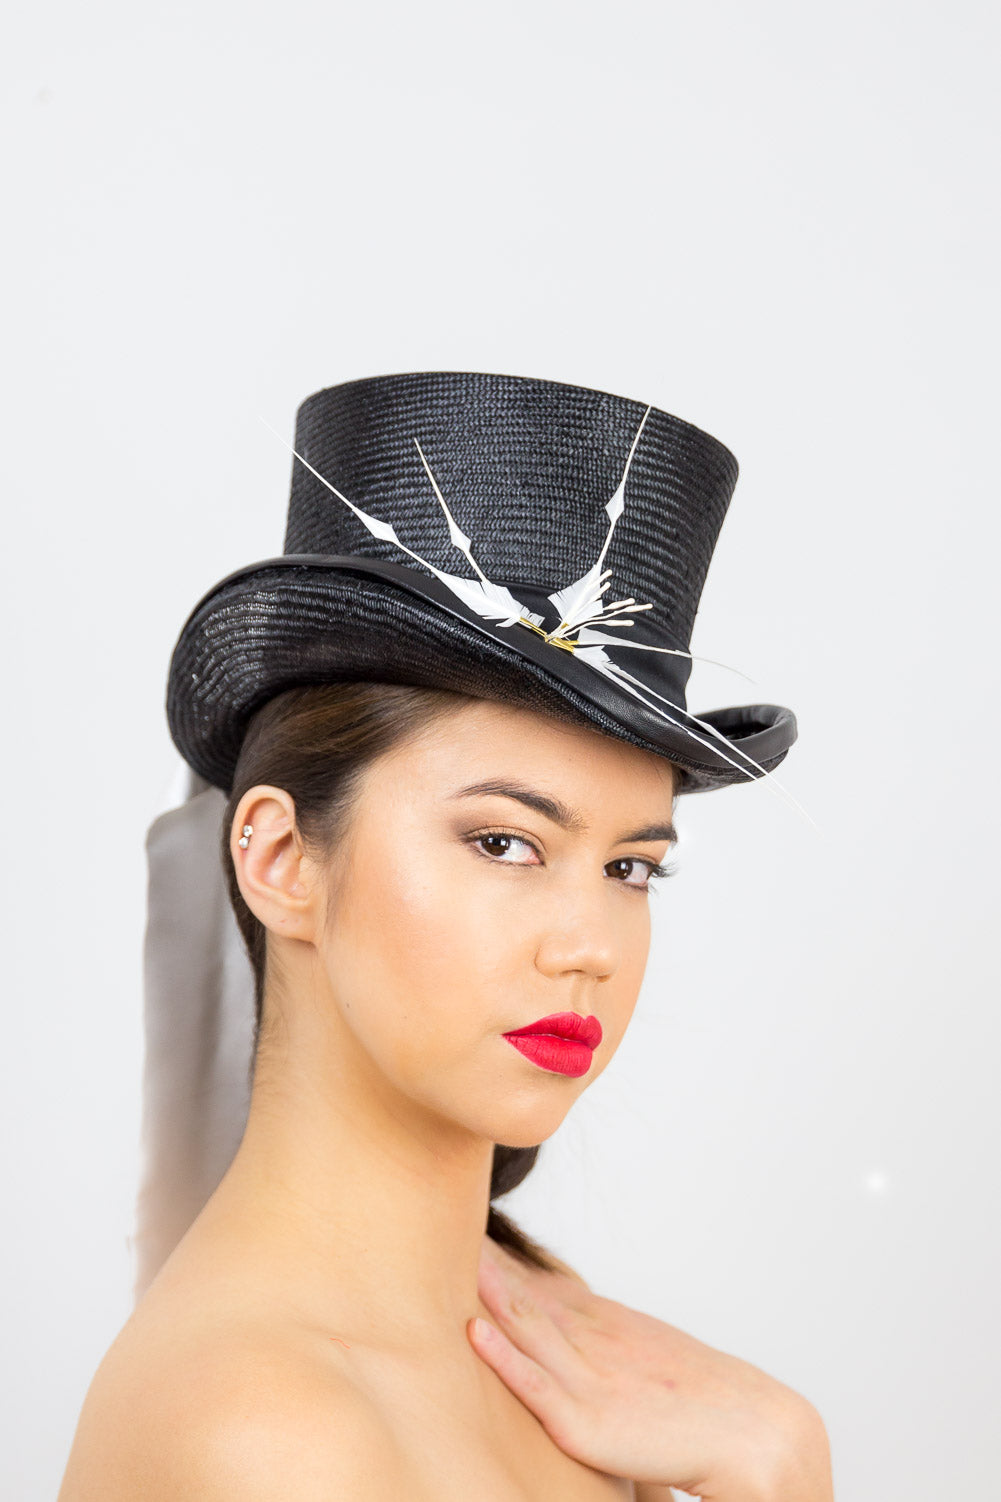 CHARLOTTE- Black tall top hat with white tie and flower